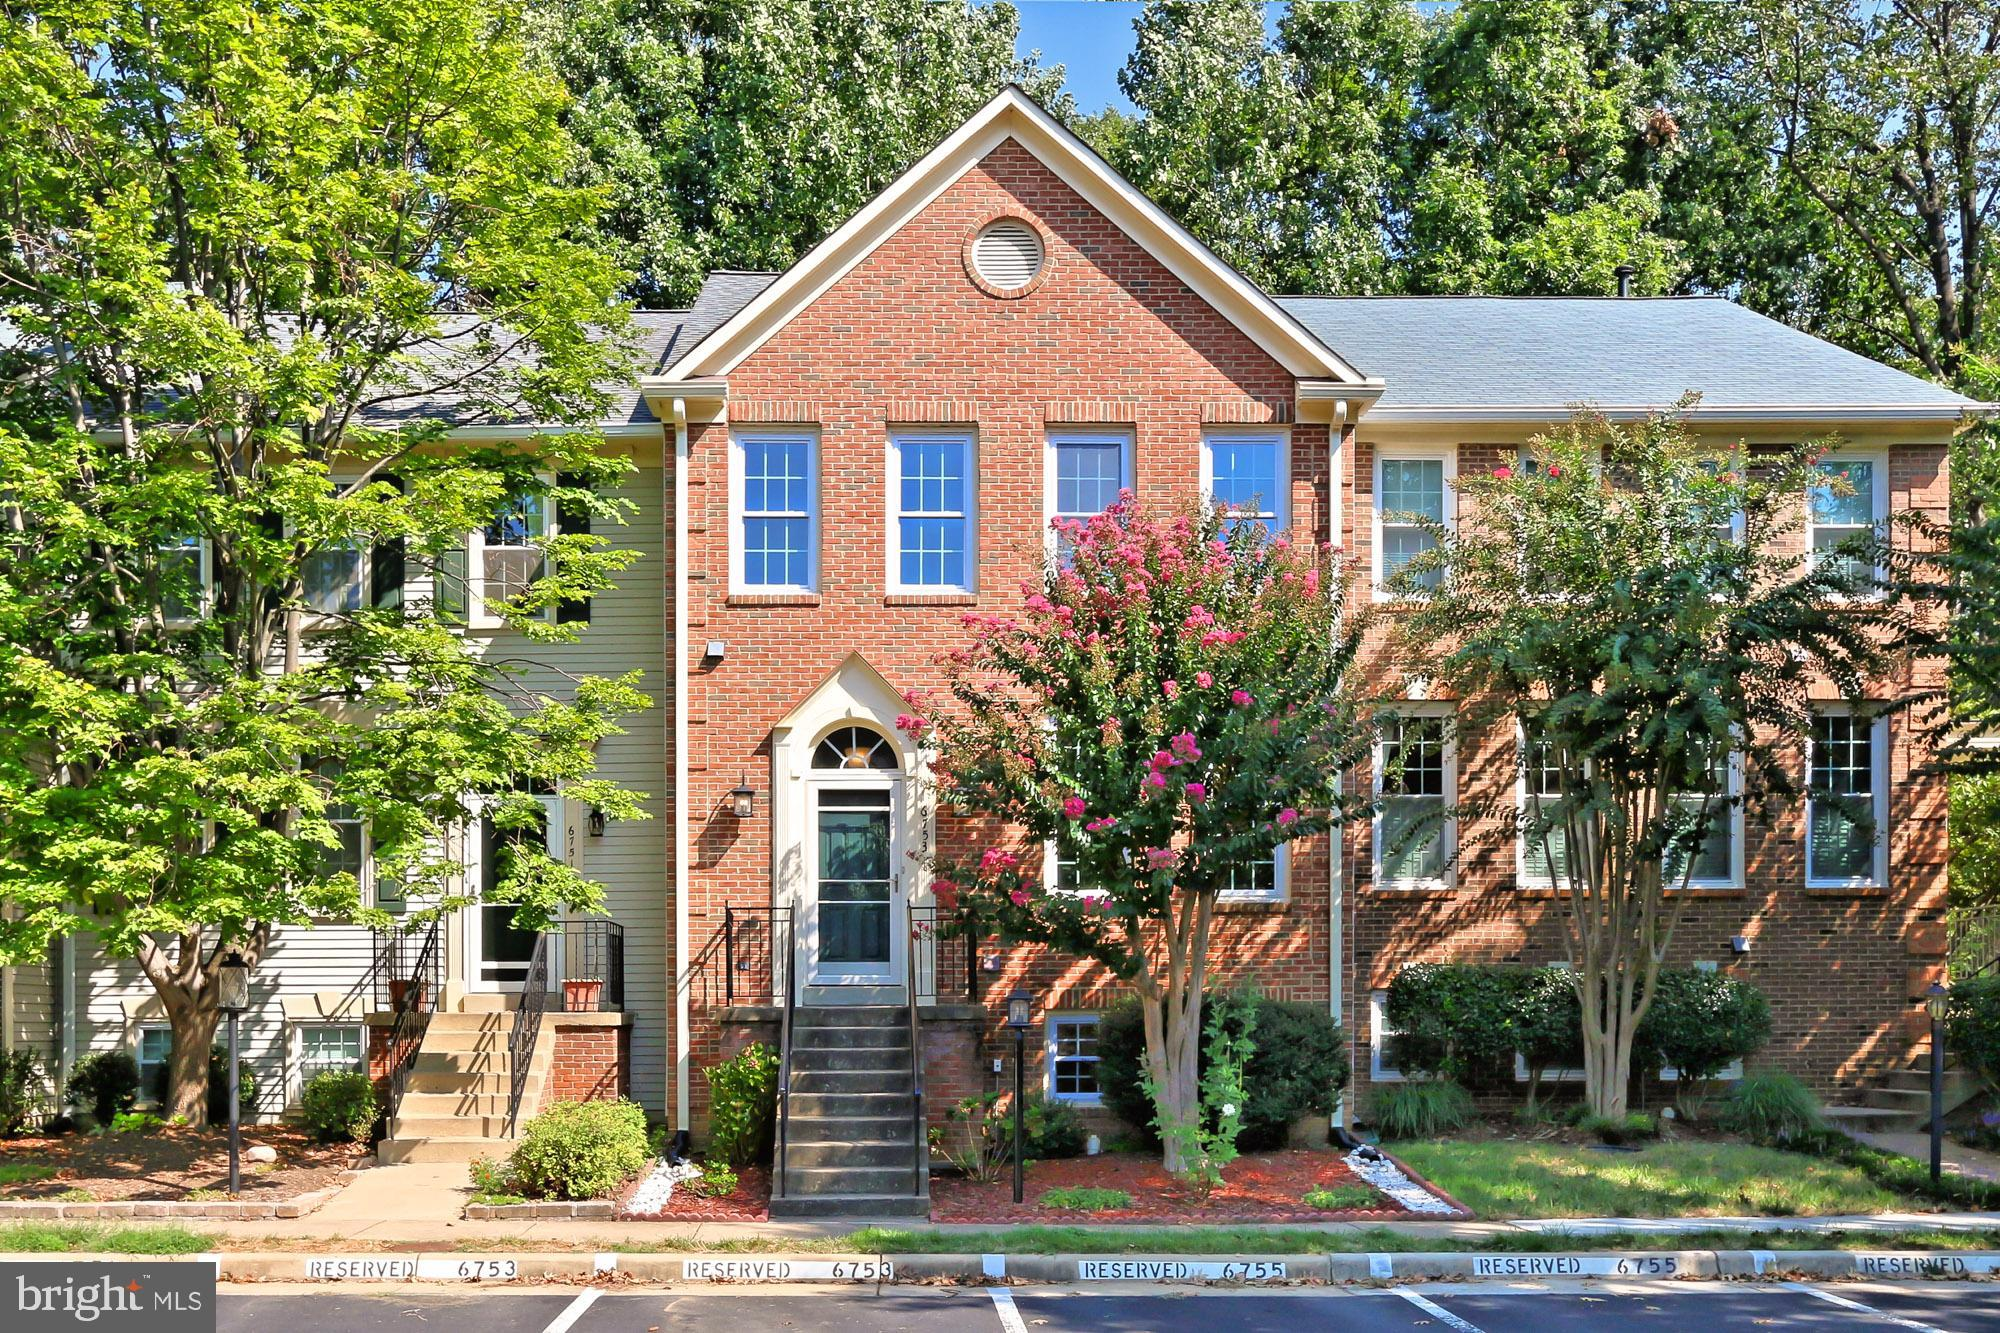 An amazing opportunity to own this very desirable home in a fabulous community; welcome to 6753 Royal Thomas Way in Alexandria, Virginia! Sellers have invested more than $60k in the infrastructure of this home to include a new roof w/architectural shingles in 2016, premium oversized Thompson Creek gutters and guards in 2017, new gas hot water heater and new sump pump in 2018, new top of the line windows and doors in 2016, and so much more...Nestled on a quiet cul-de-sac, this beautifully updated, meticulously maintained 4 bedroom, 3.5 bath Saybrooke model townhome offers plenty of interior living space and a peaceful backyard sheltered by majestic woodland for ultimate privacy. A stately brick facade, sundeck, flagstone patio, open floor plan, warm floors, high ceilings, crisp moldings, and an abundance of new windows (2016) are only some of the reasons this home is so special. A gracious master suite, 3-level bump out addition, and a fully finished lower level create instant appeal, as loving maintenance makes it move-in ready. Rich-toned flooring greets you in the foyer and usher you upward to the living room where 2 windows bathe the space in natural light and illuminate crisp crown molding and a soft neutral color palette. The adjoining dining area with space for all occasions echoes these design details and is accented by chair rail and a contemporary drum light. The sparkling kitchen with is sure to please with newer gleaming granite countertops, an abundance of pristine 42~ cabinetry, and quality stainless steel appliances~including a gas range and a new French door refrigerator. An angled peninsula counter provides an additional working surface and extra seating, as recessed lighting provides a stylish finish touch. Neutral flooring spills into a sun-drenched breakfast area ideal for daily dining in front of big windows with wooded views and a glass-paned door opening to a spacious sundeck; while the cozy family room is bathed in natural light and sure to be